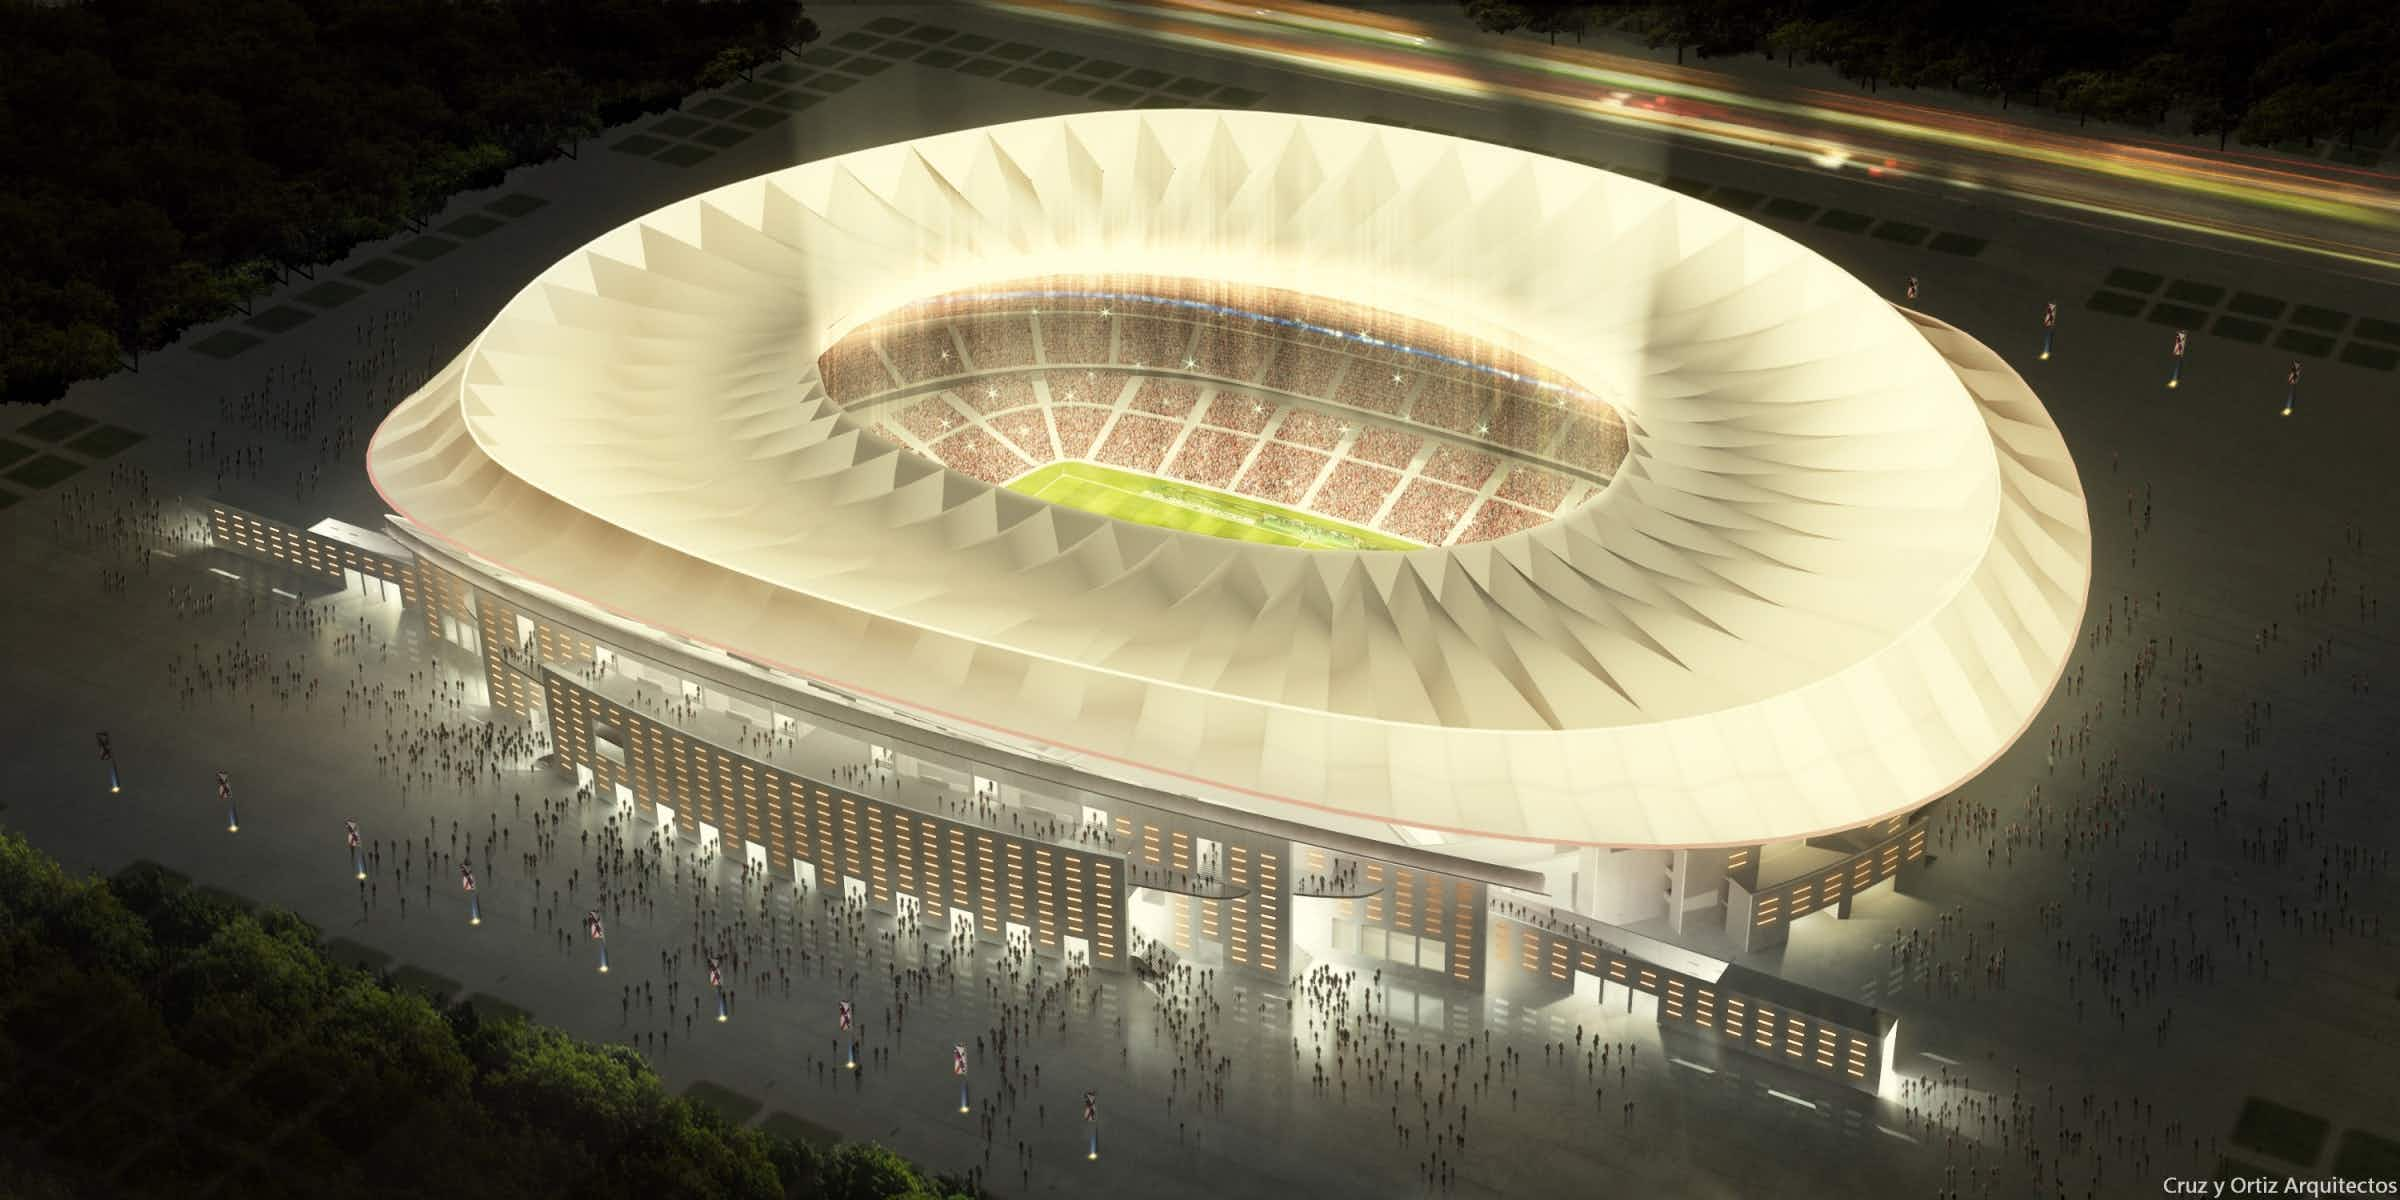 Atlético Madrid's incredible soccer new stadium set to be unveiled this weekend